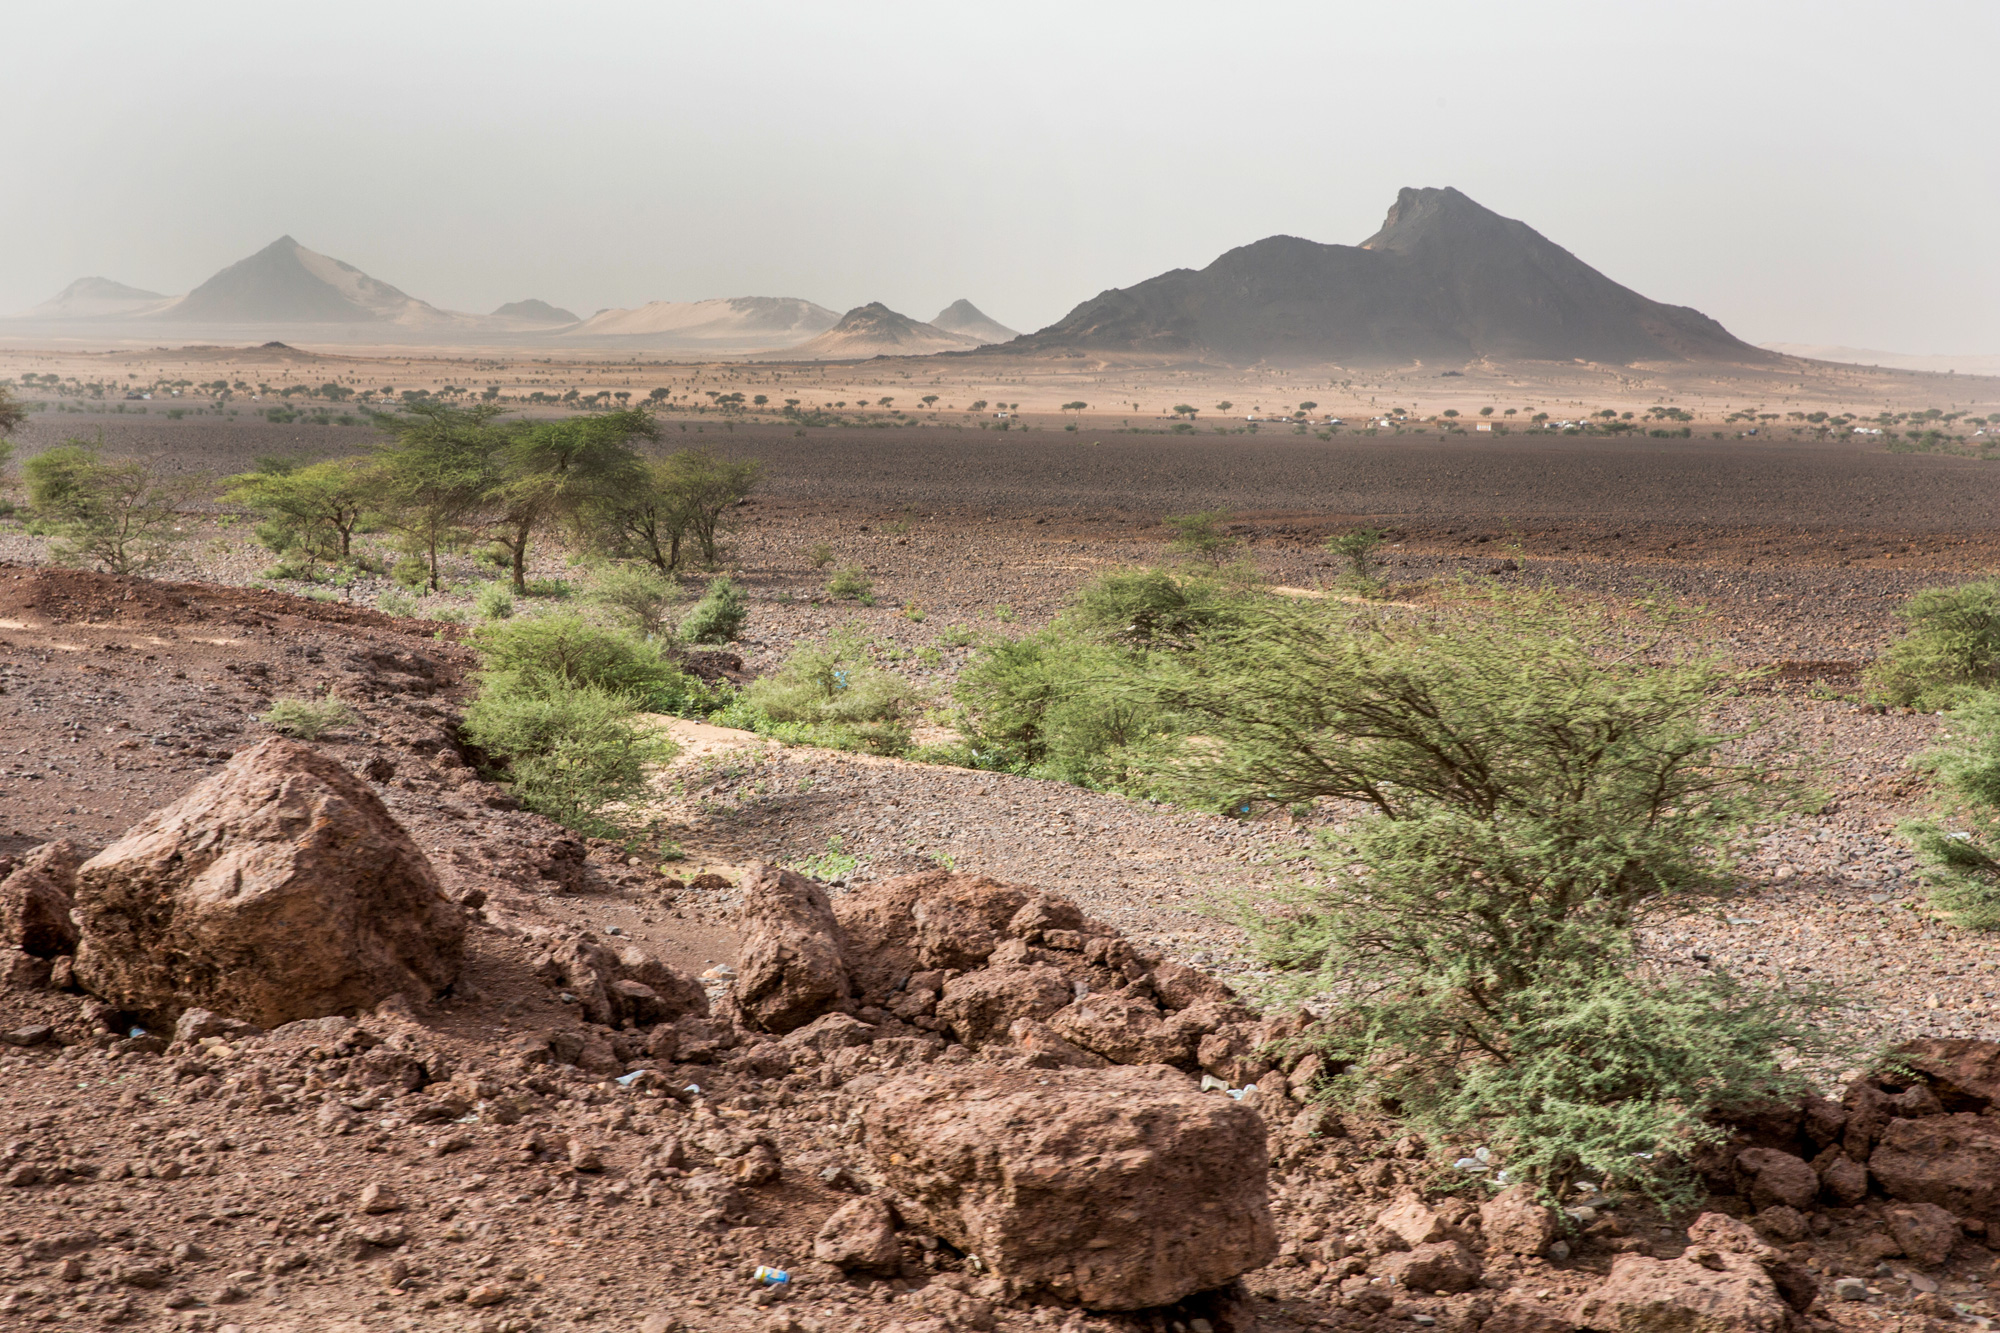 The rocky landscape of the Zouérat region of northern Mauritania. (George Popescu/GroundTruth)